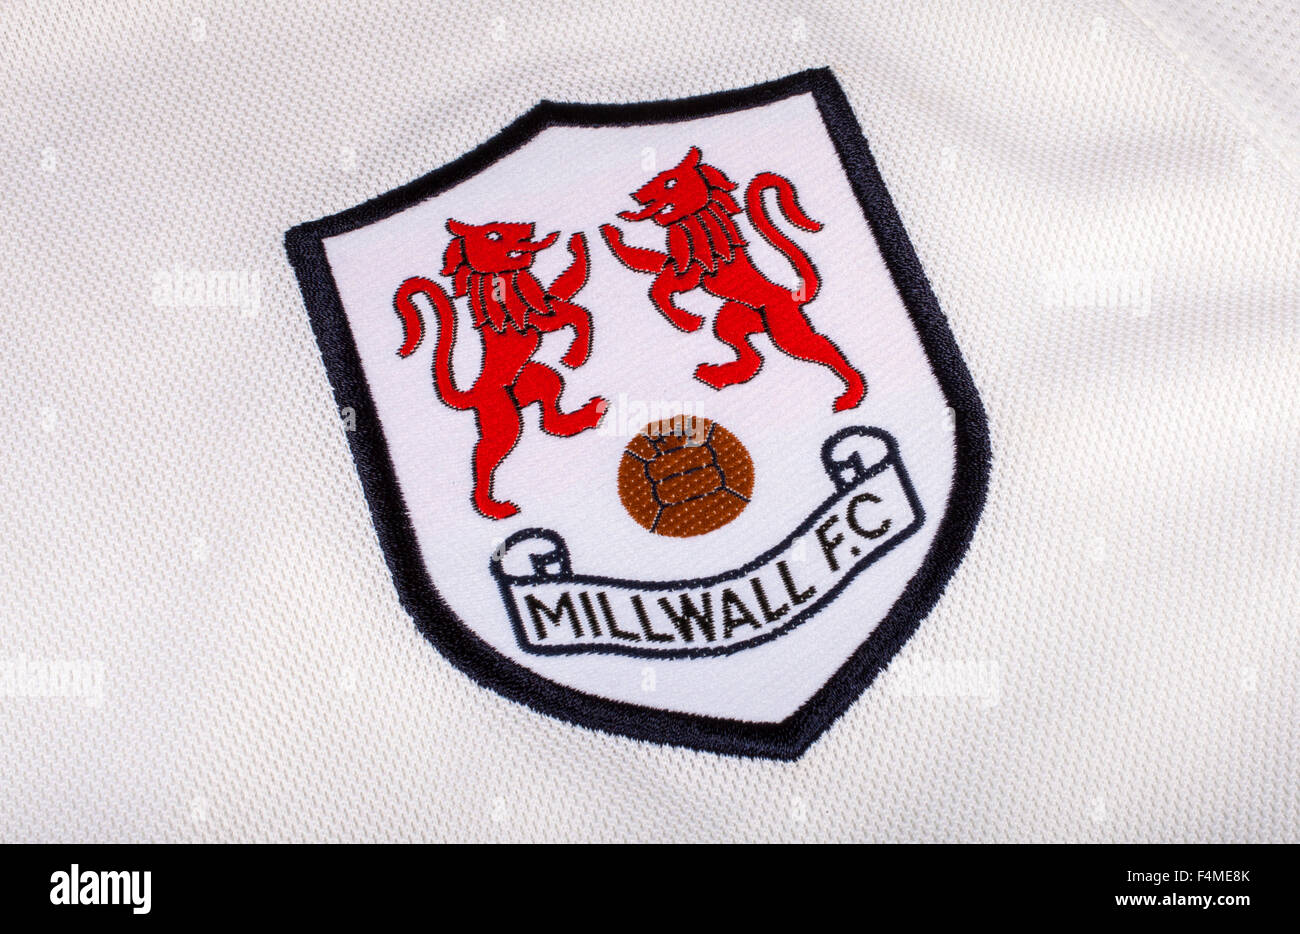 LONDON, UK - OCTOBER 19TH 2015: The club crest on a Millwall FC shirt, on 19th October 2015. - Stock Image